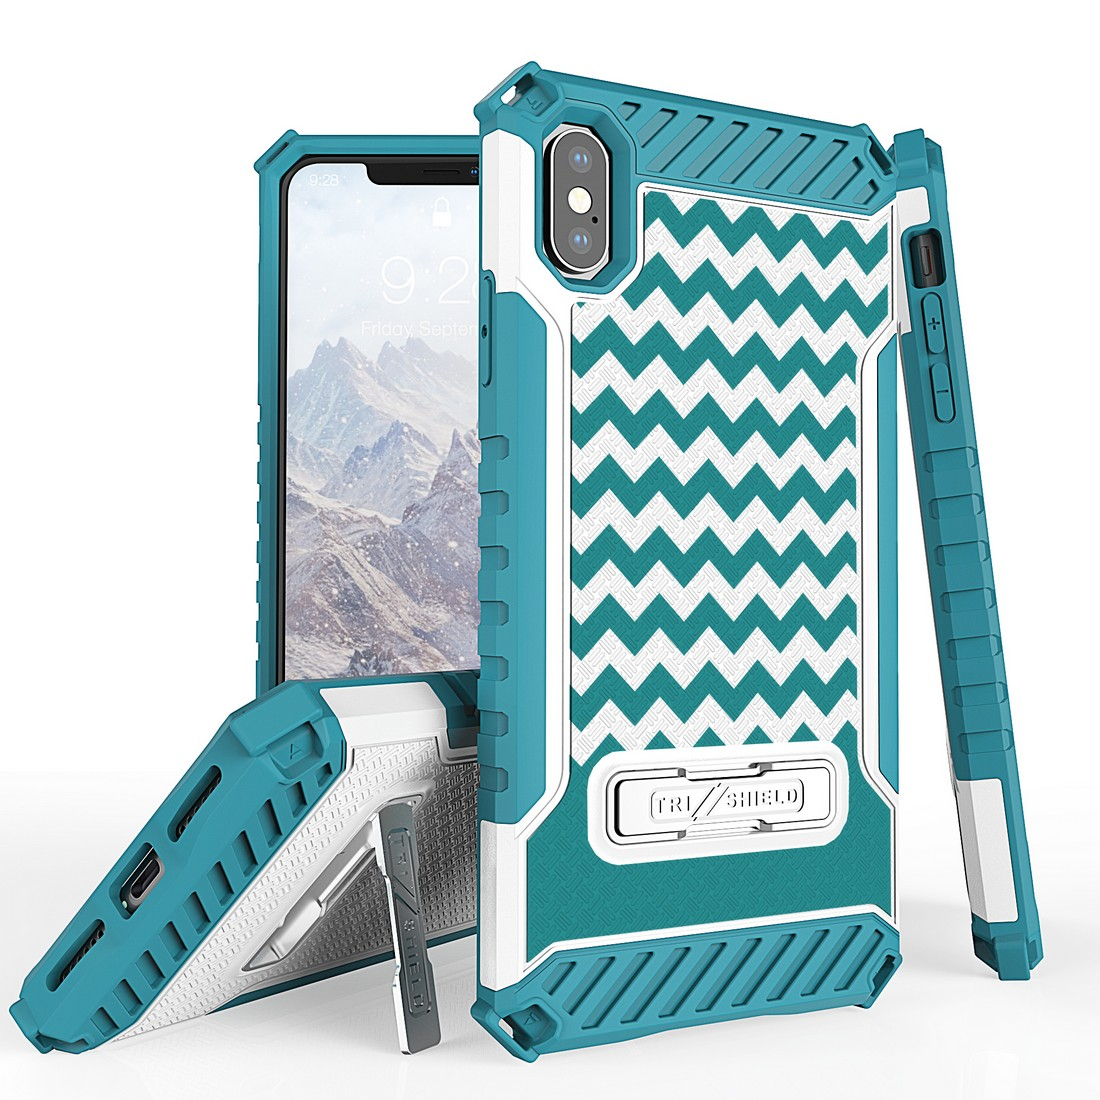 Beyond Cell Tri Shield Military Grade Shock Proof [MIL-STD 810G-516.6] Kickstand Case Cover for iPhone Xs Max - Teal Chevron